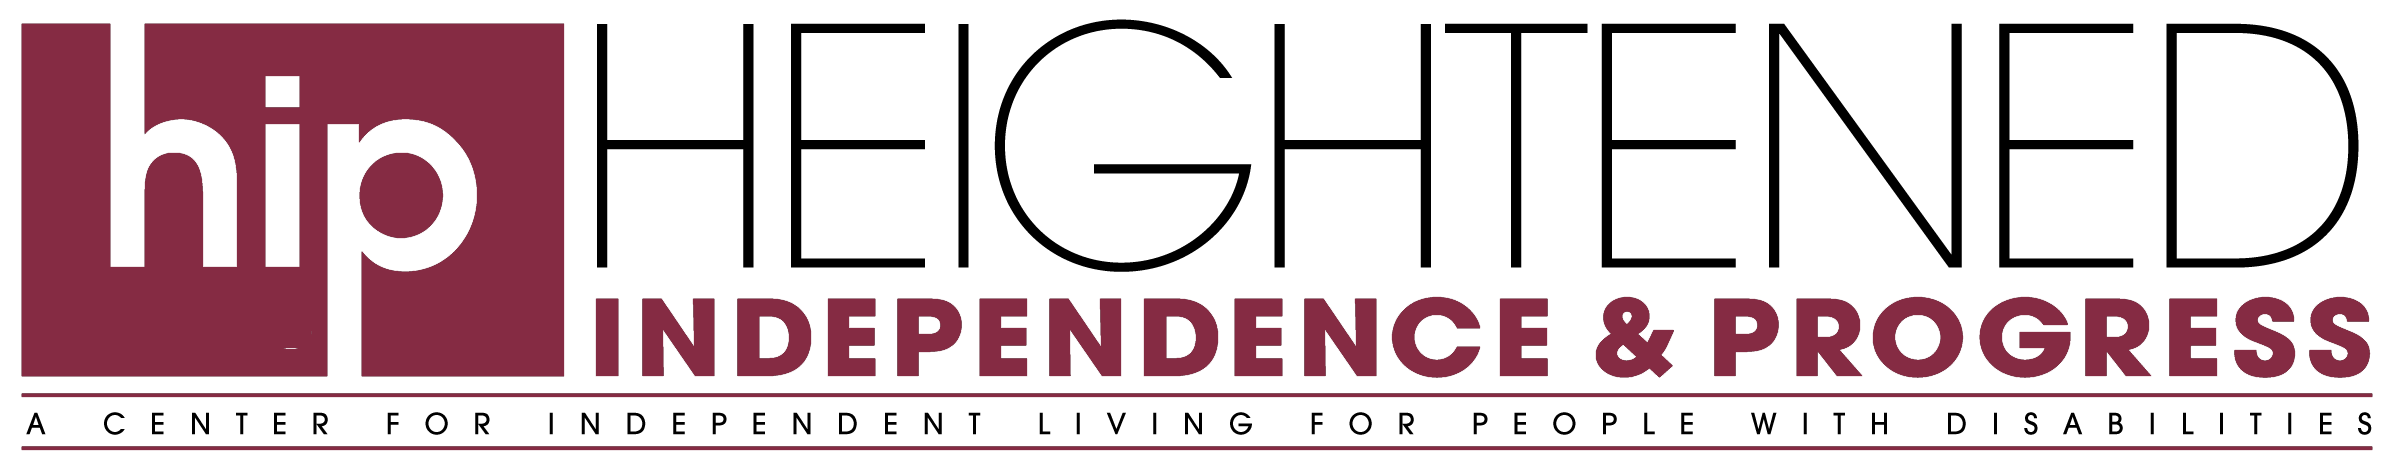 Heightened Independence & Progress (hip)